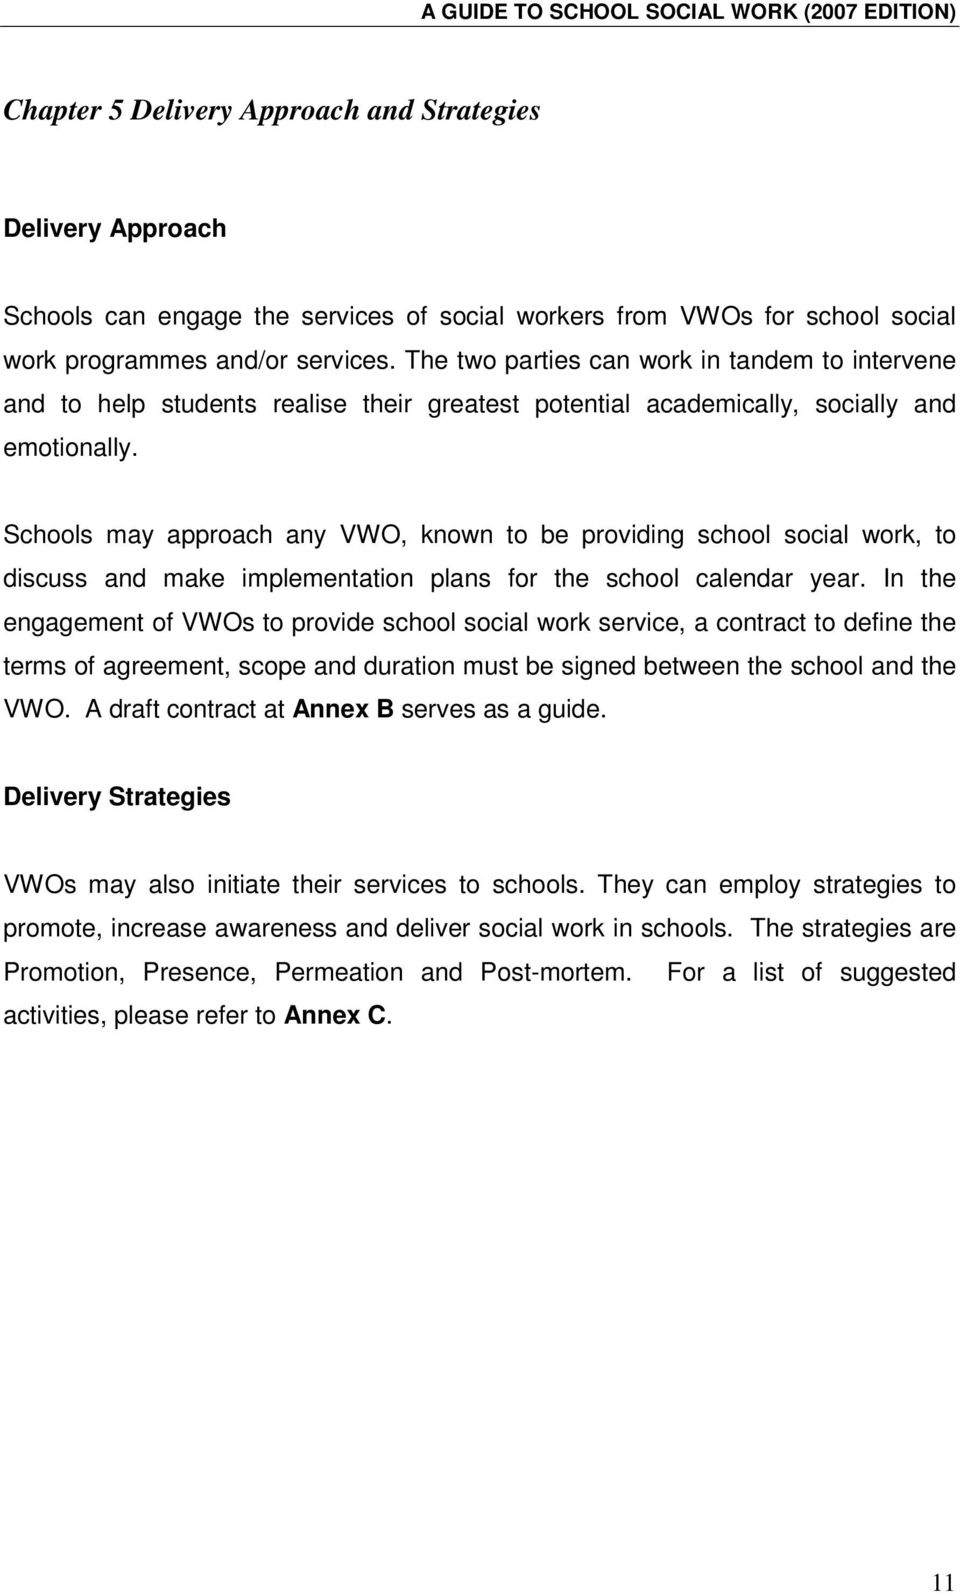 Schools may approach any VWO, known to be providing school social work, to discuss and make implementation plans for the school calendar year.